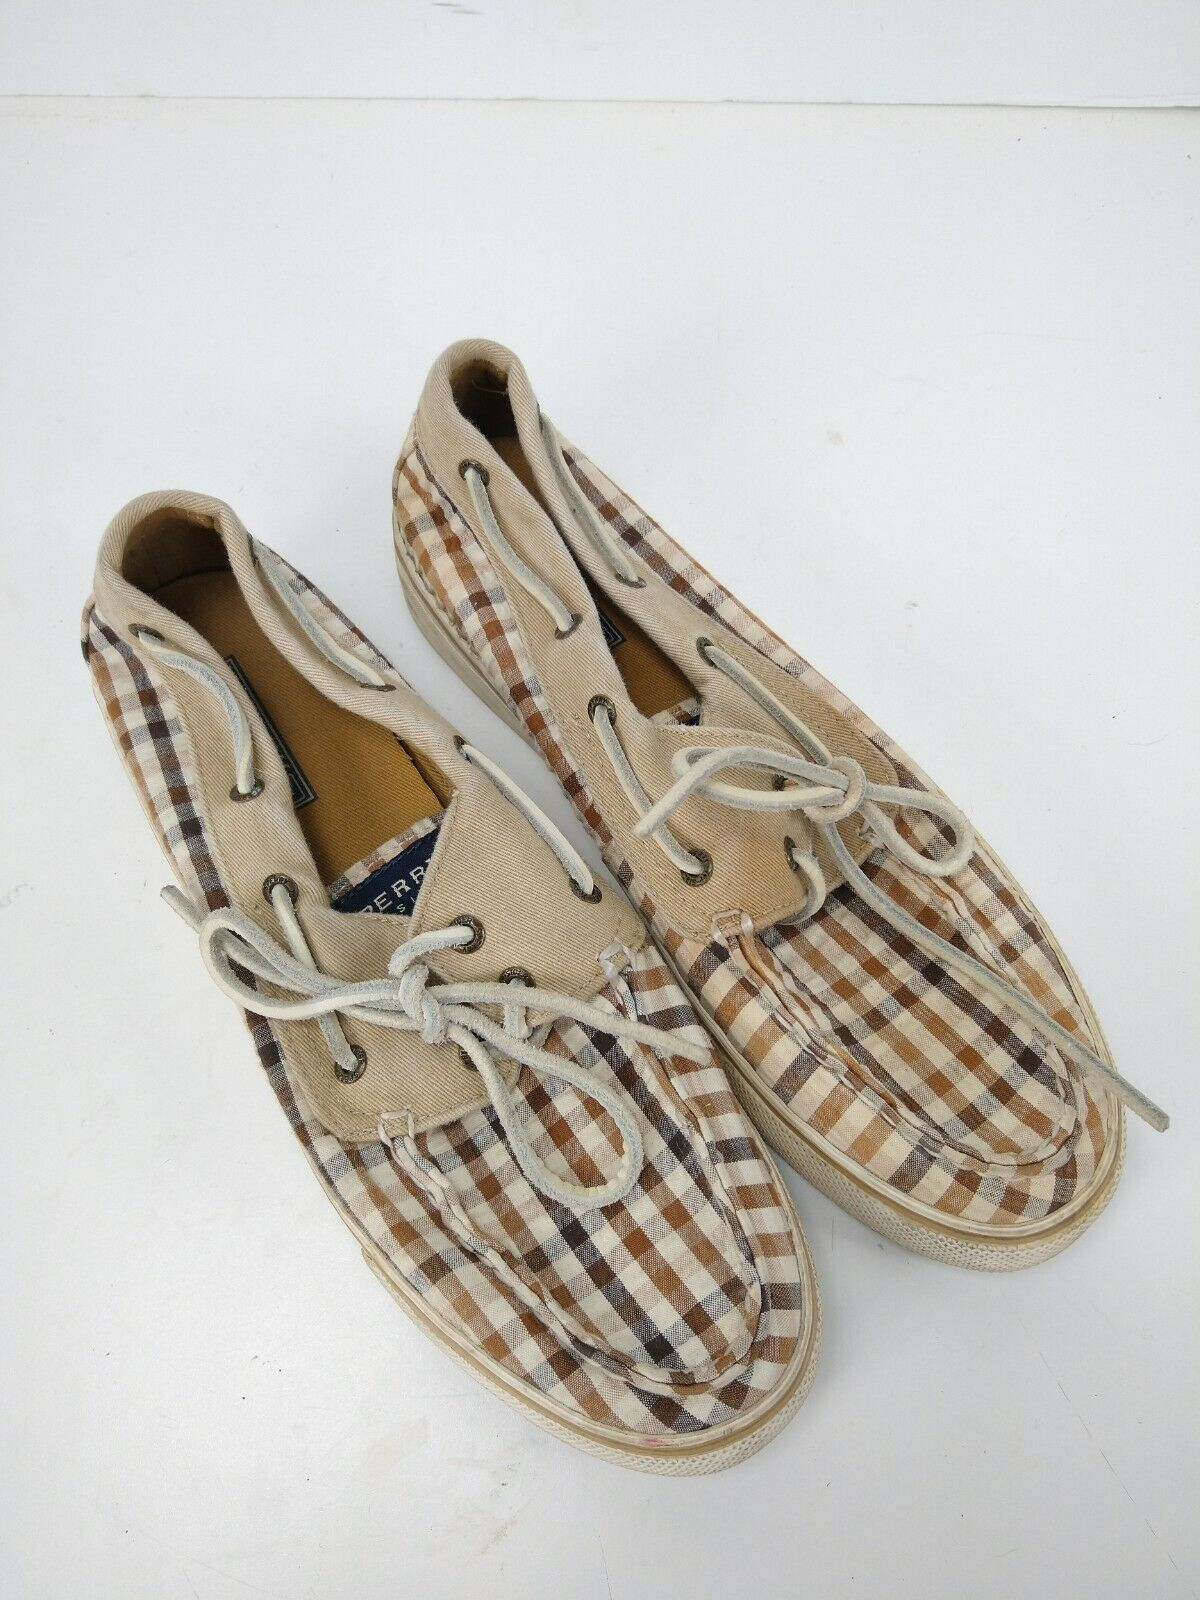 Sperry Top Sider Canvas Original Boat Shoes Womens Size 9 Brown Plaid Slip On